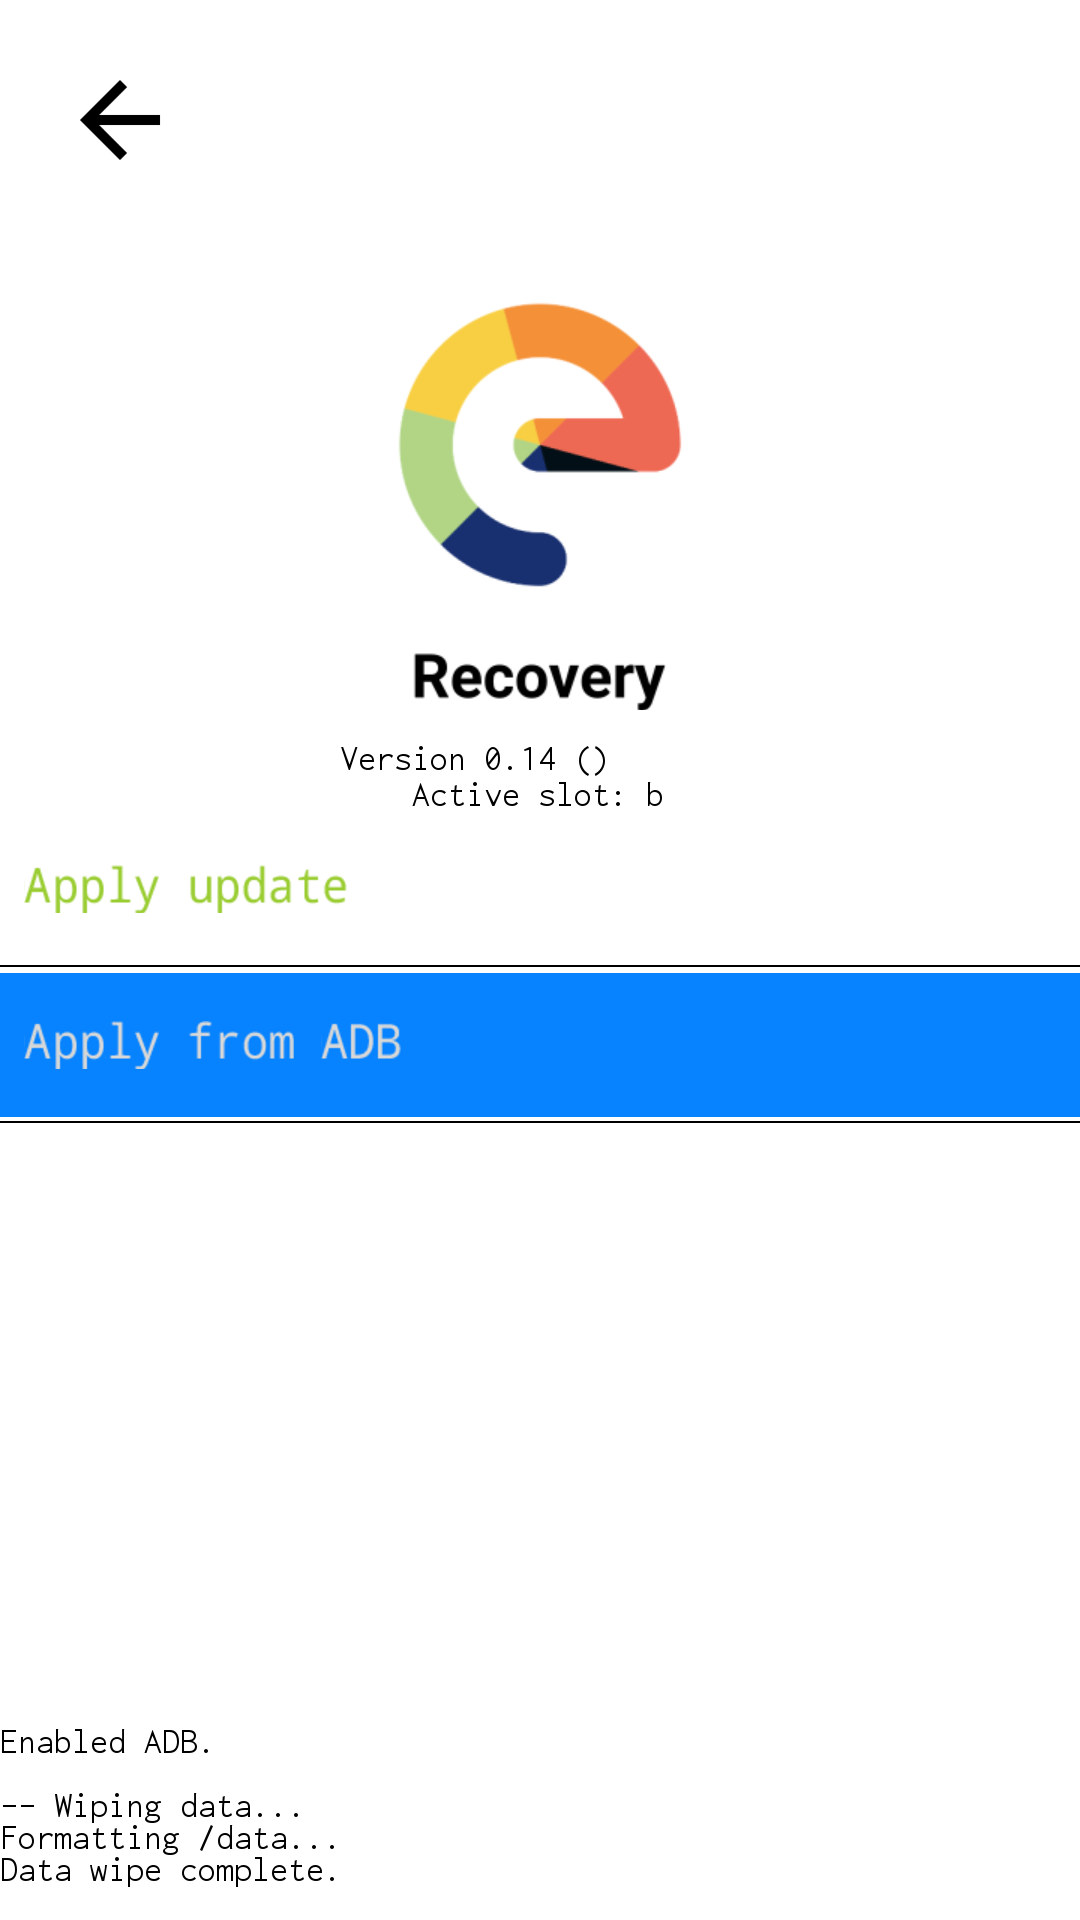 recovery6